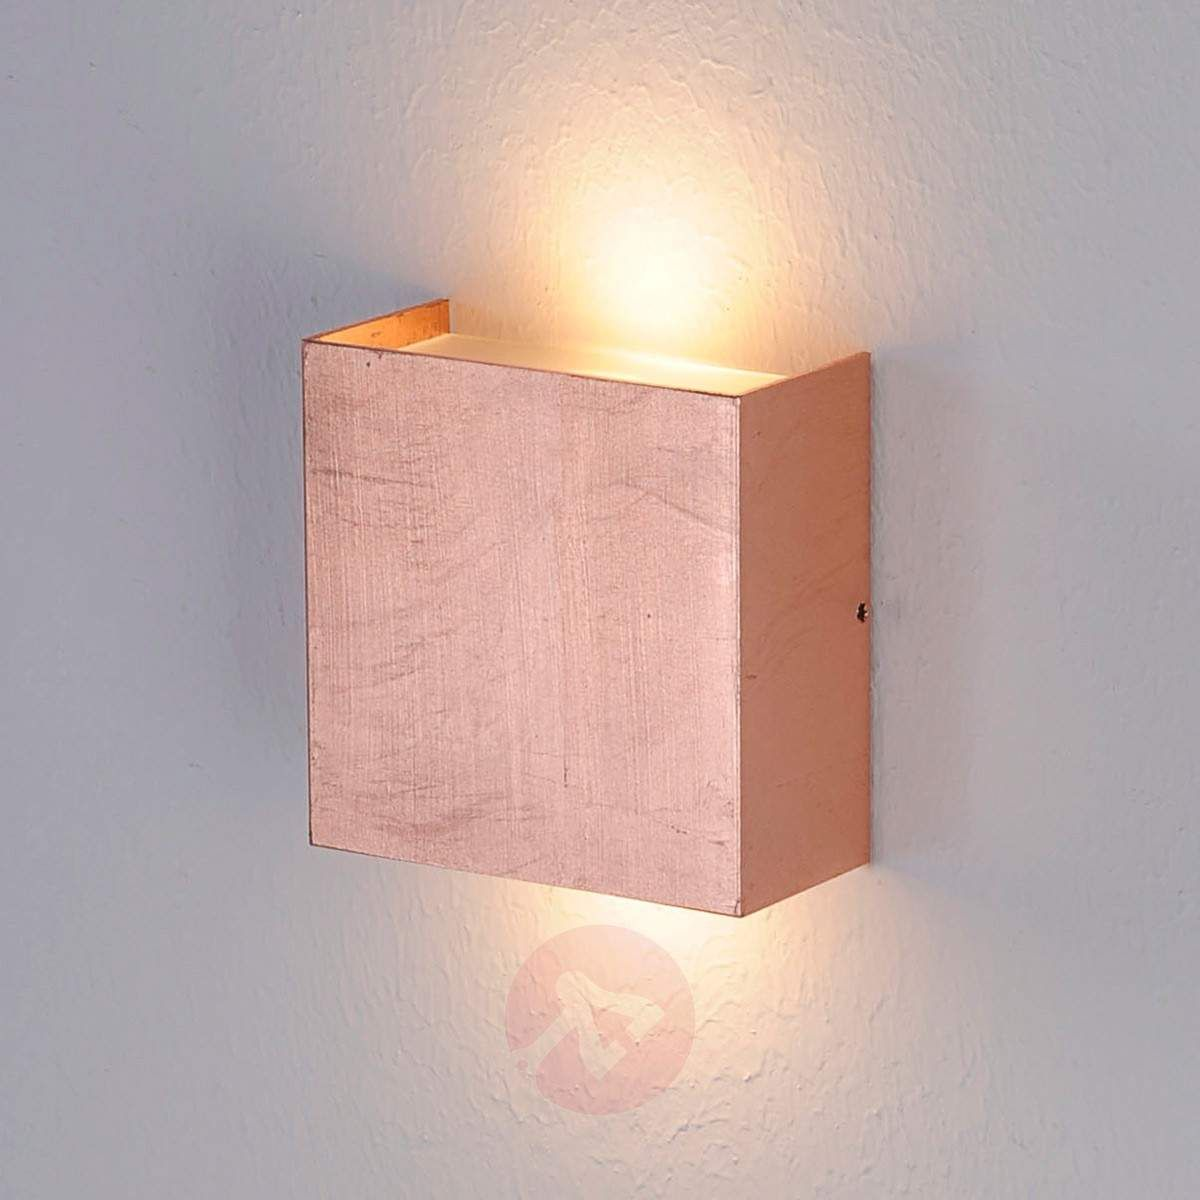 Mira LED wall light with antique copper finish Wall Lights